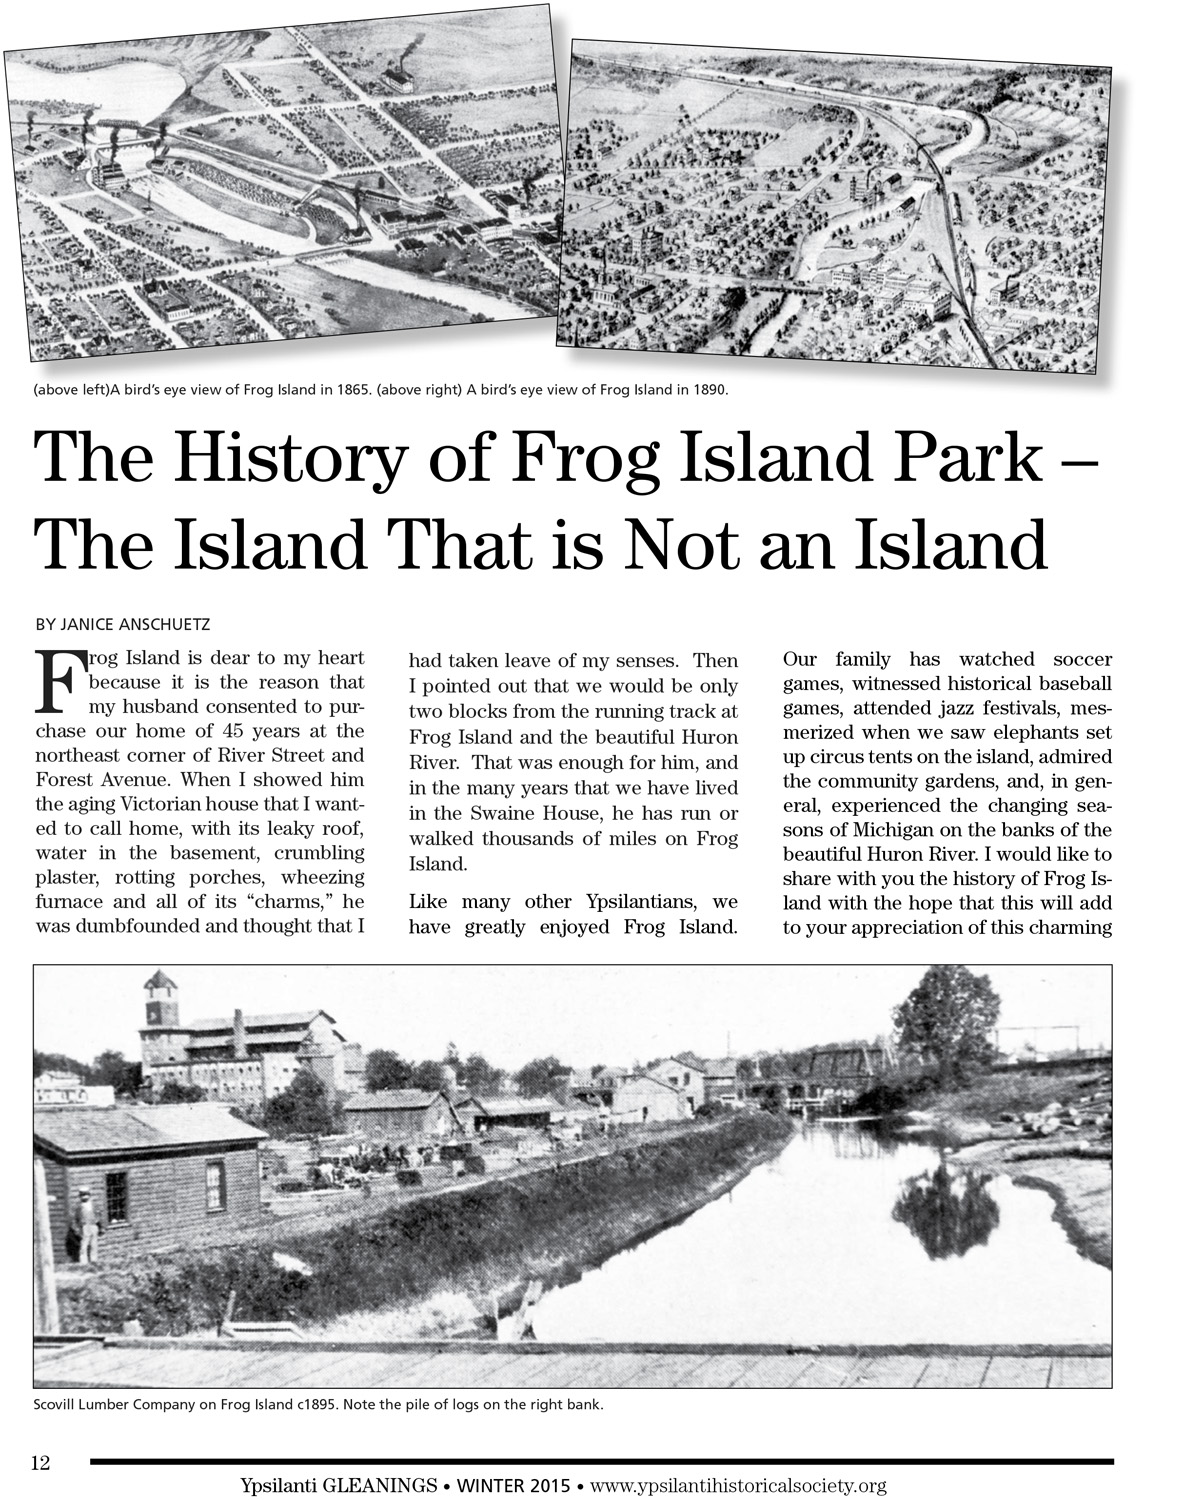 The History of Frog Island Park – The Island That is Not an Island image